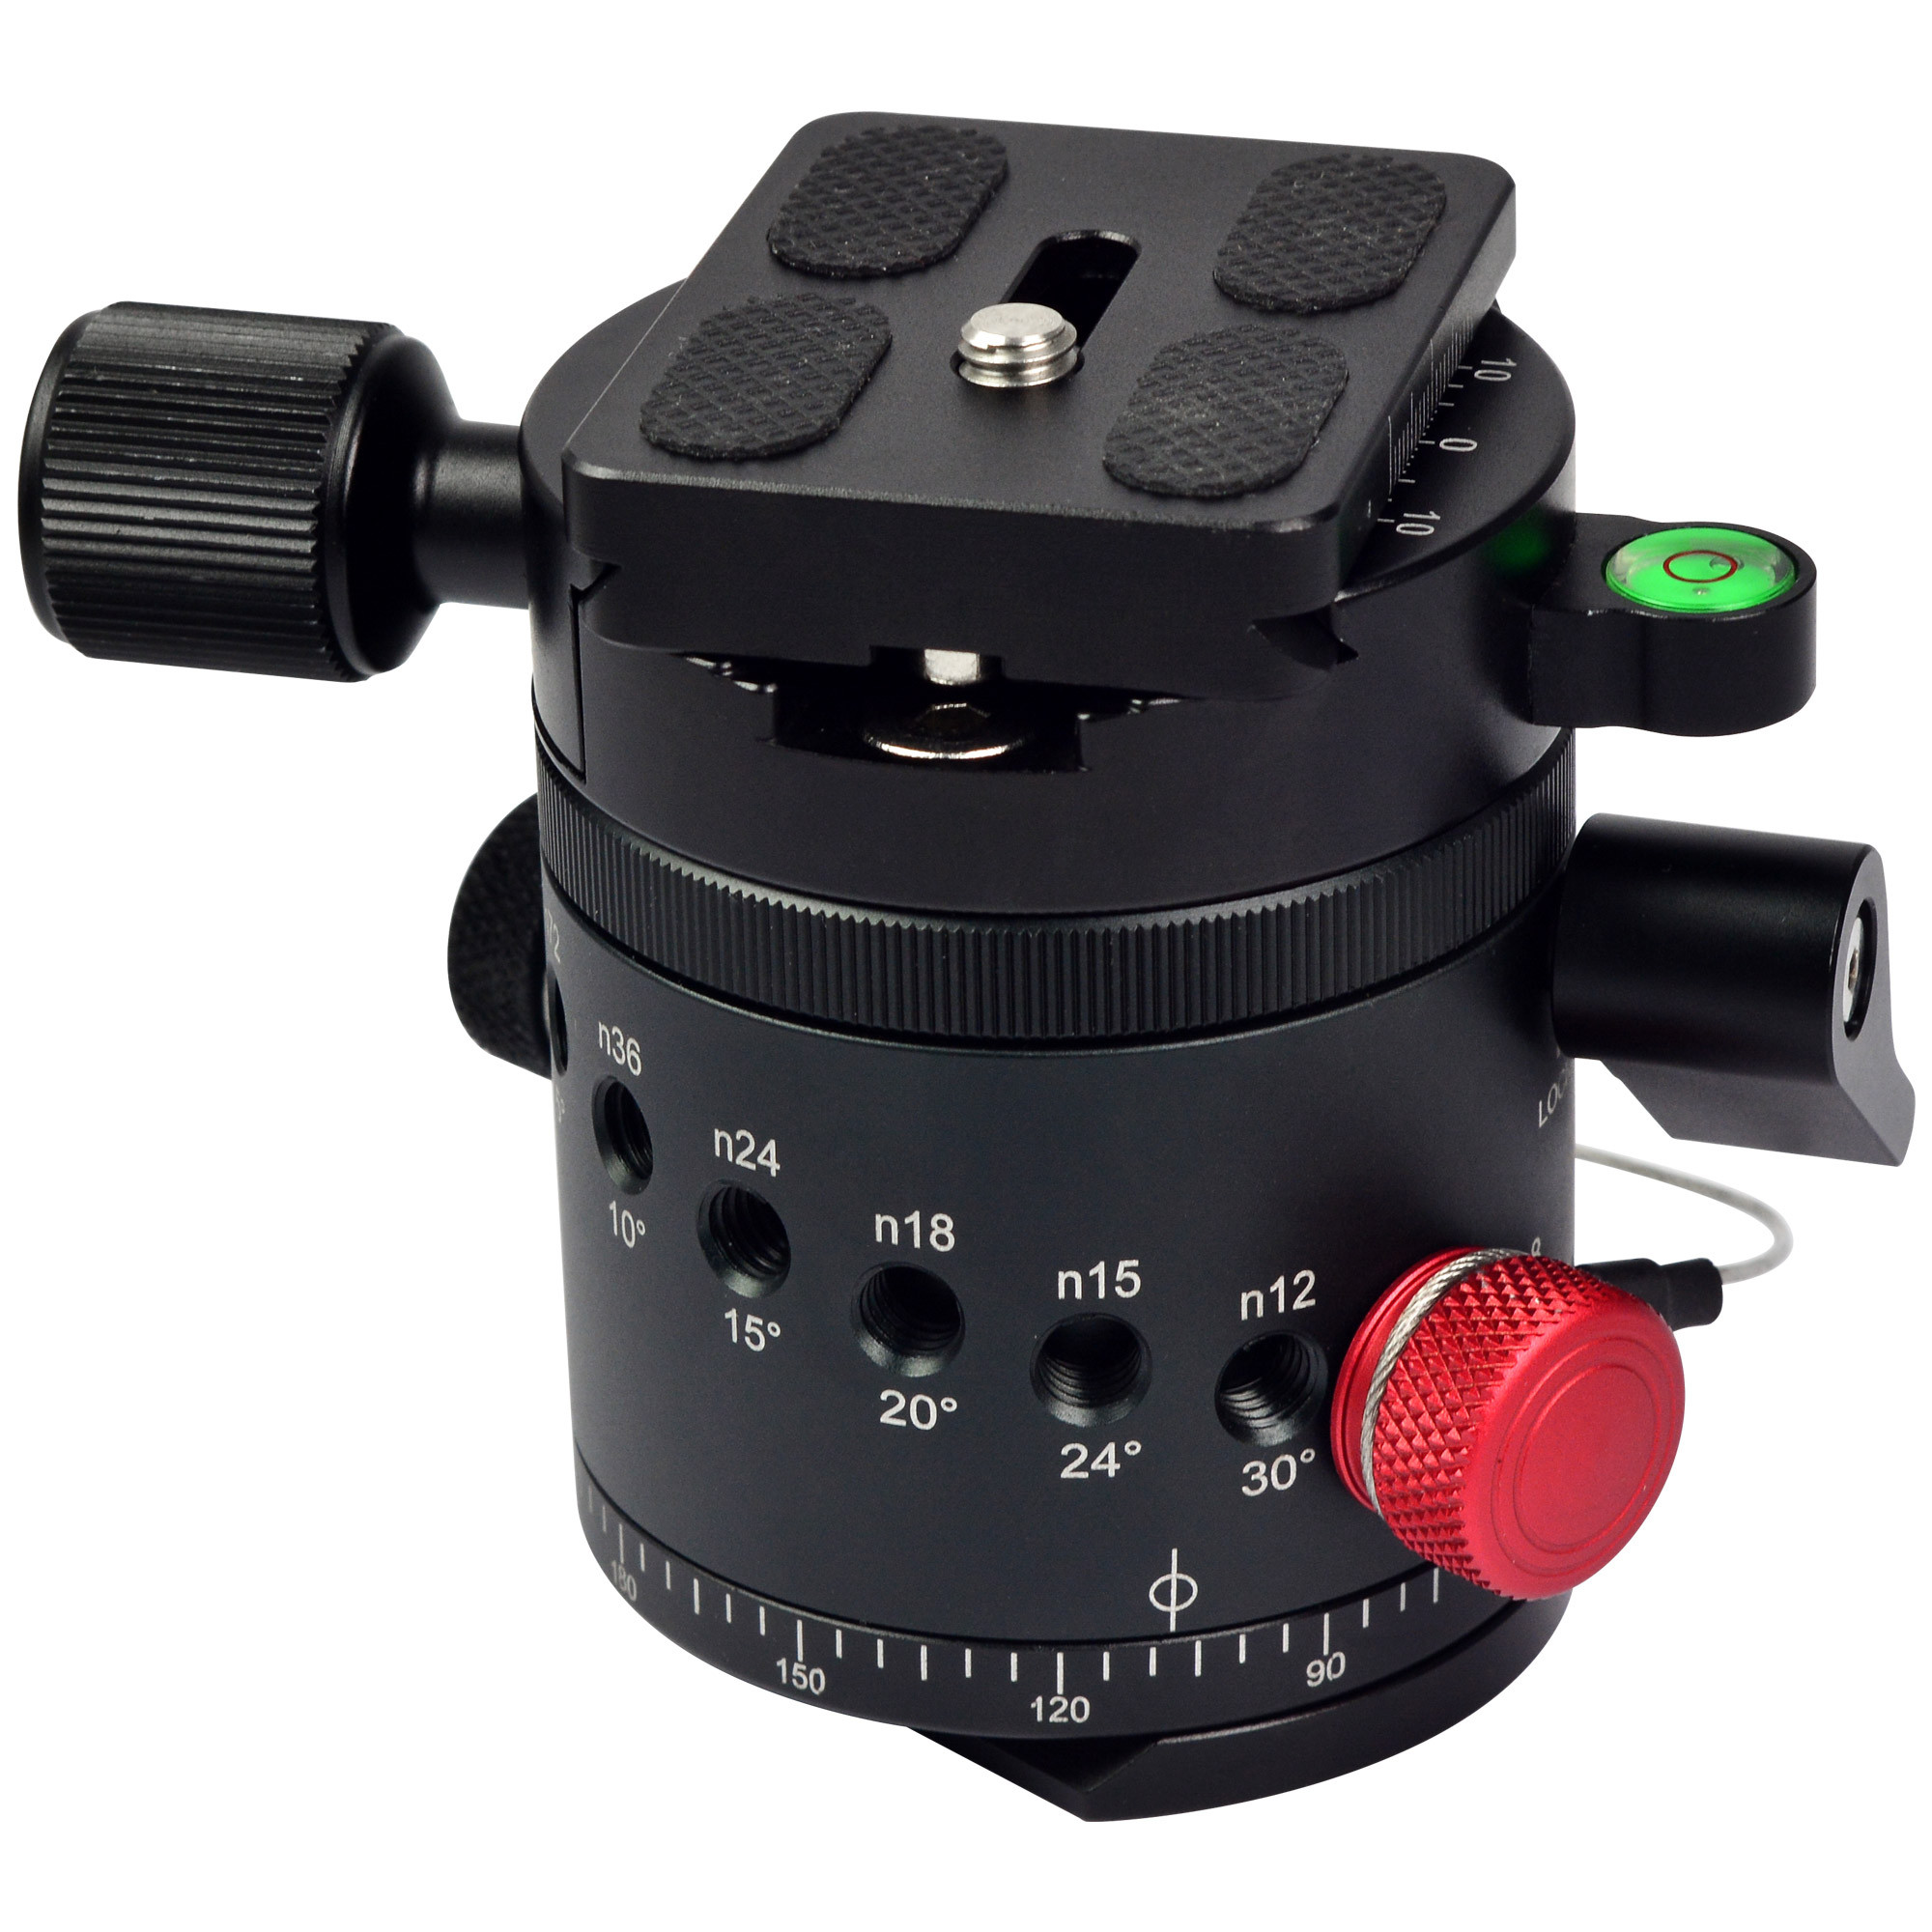 ... Camera Tripod Ball Head With Quick Release Plate. MENGS® DH-55 1/4 inch & 3/8 inch Mounting Screw